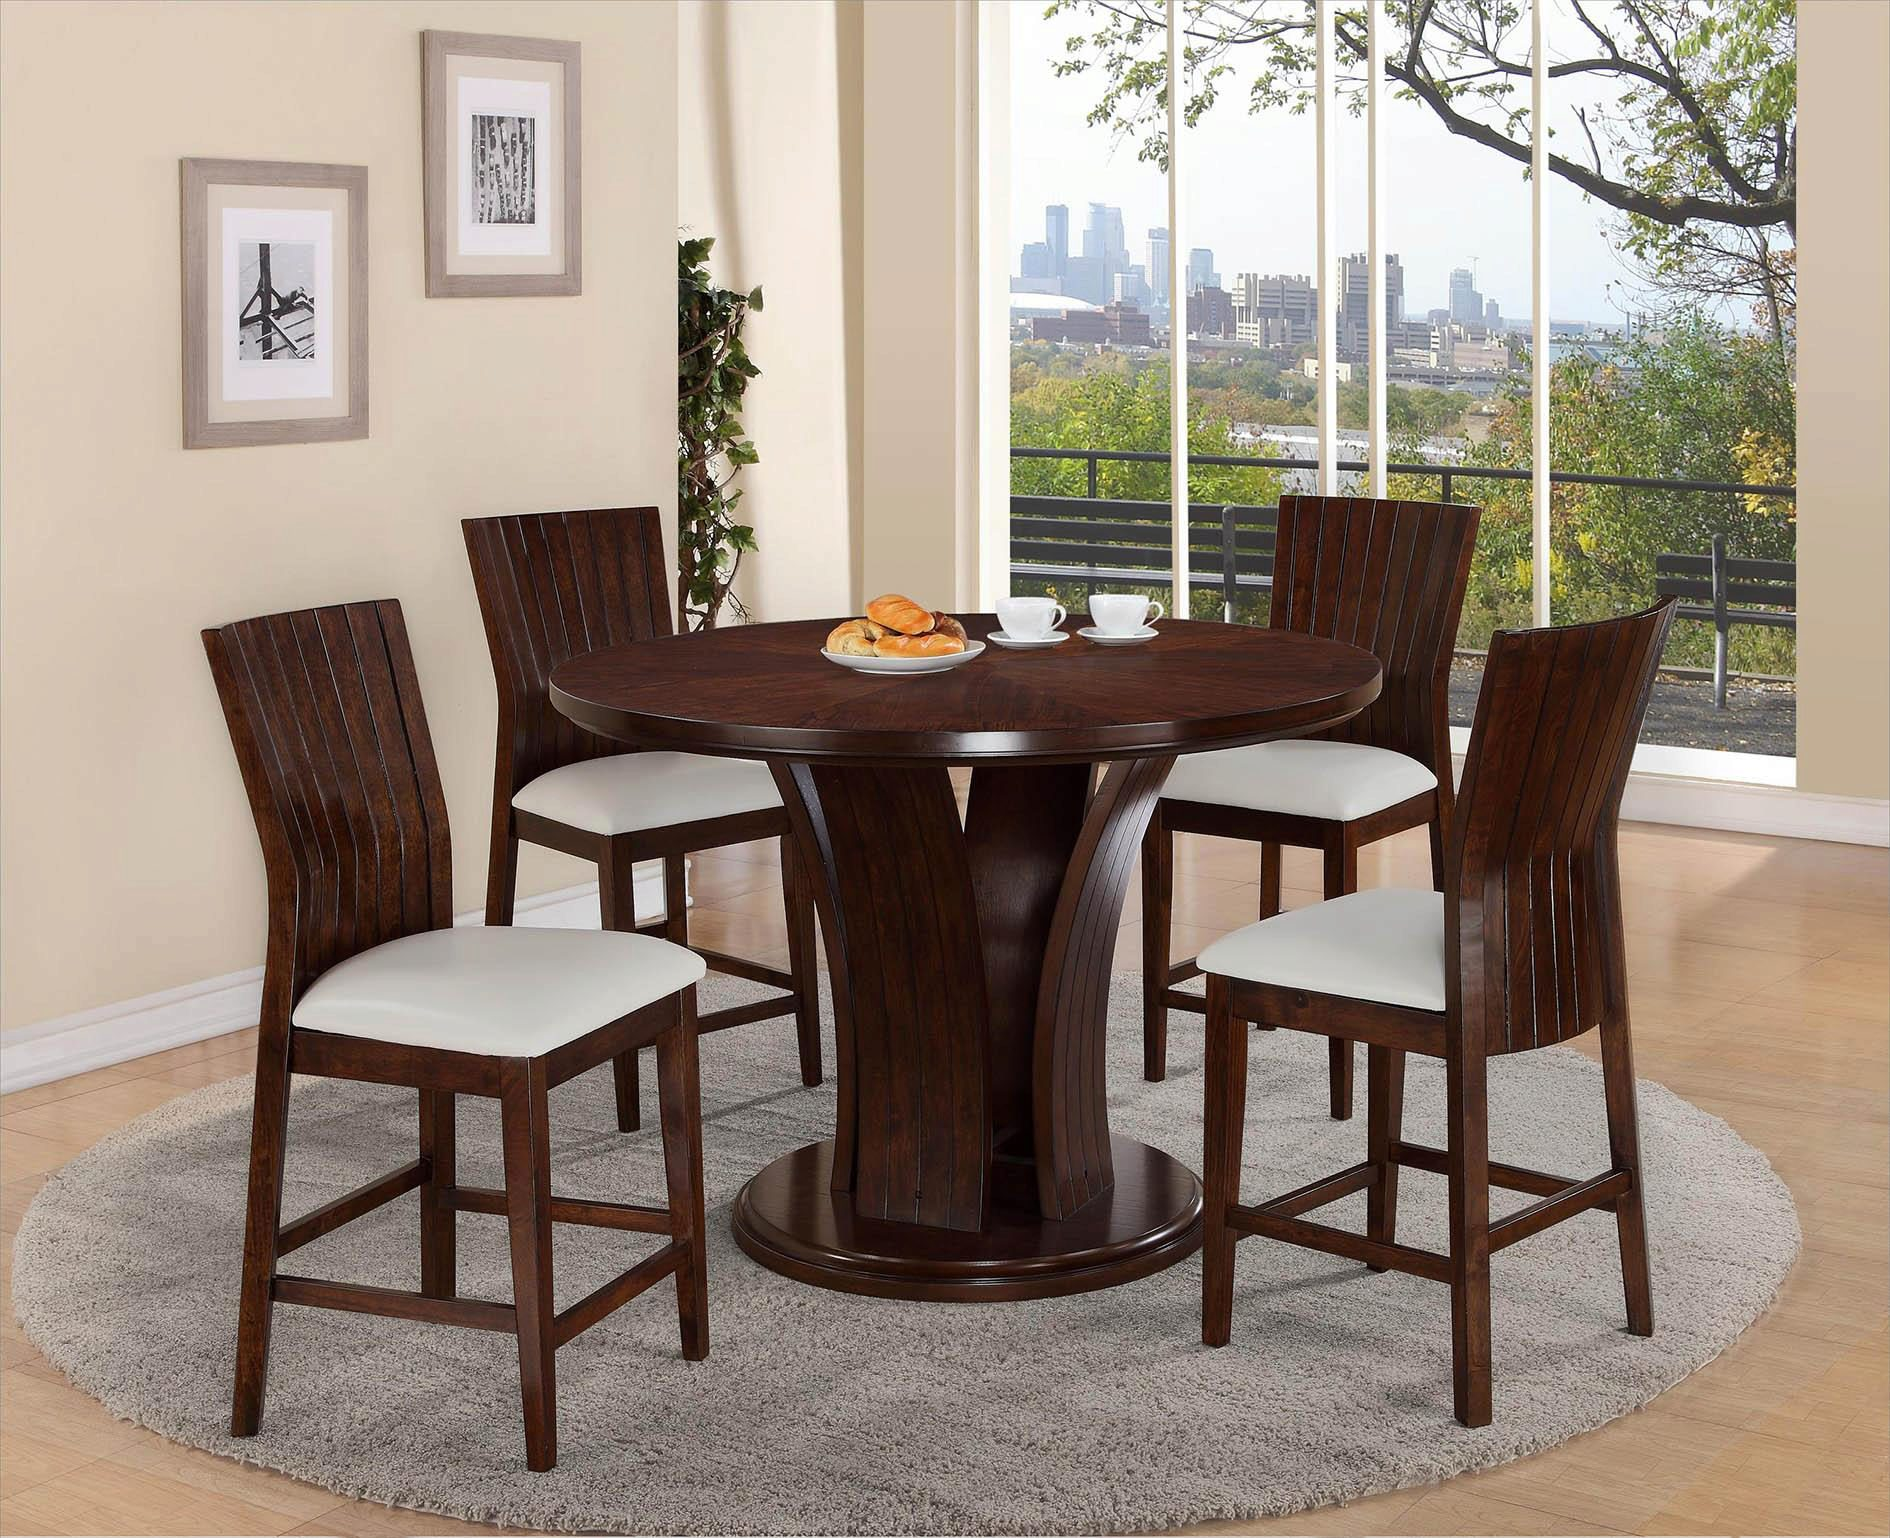 Picture of: Crown Mark D2734wh Daria Round Pub Height Dining Table And Stool Set 5pcs D2734wh Set 5